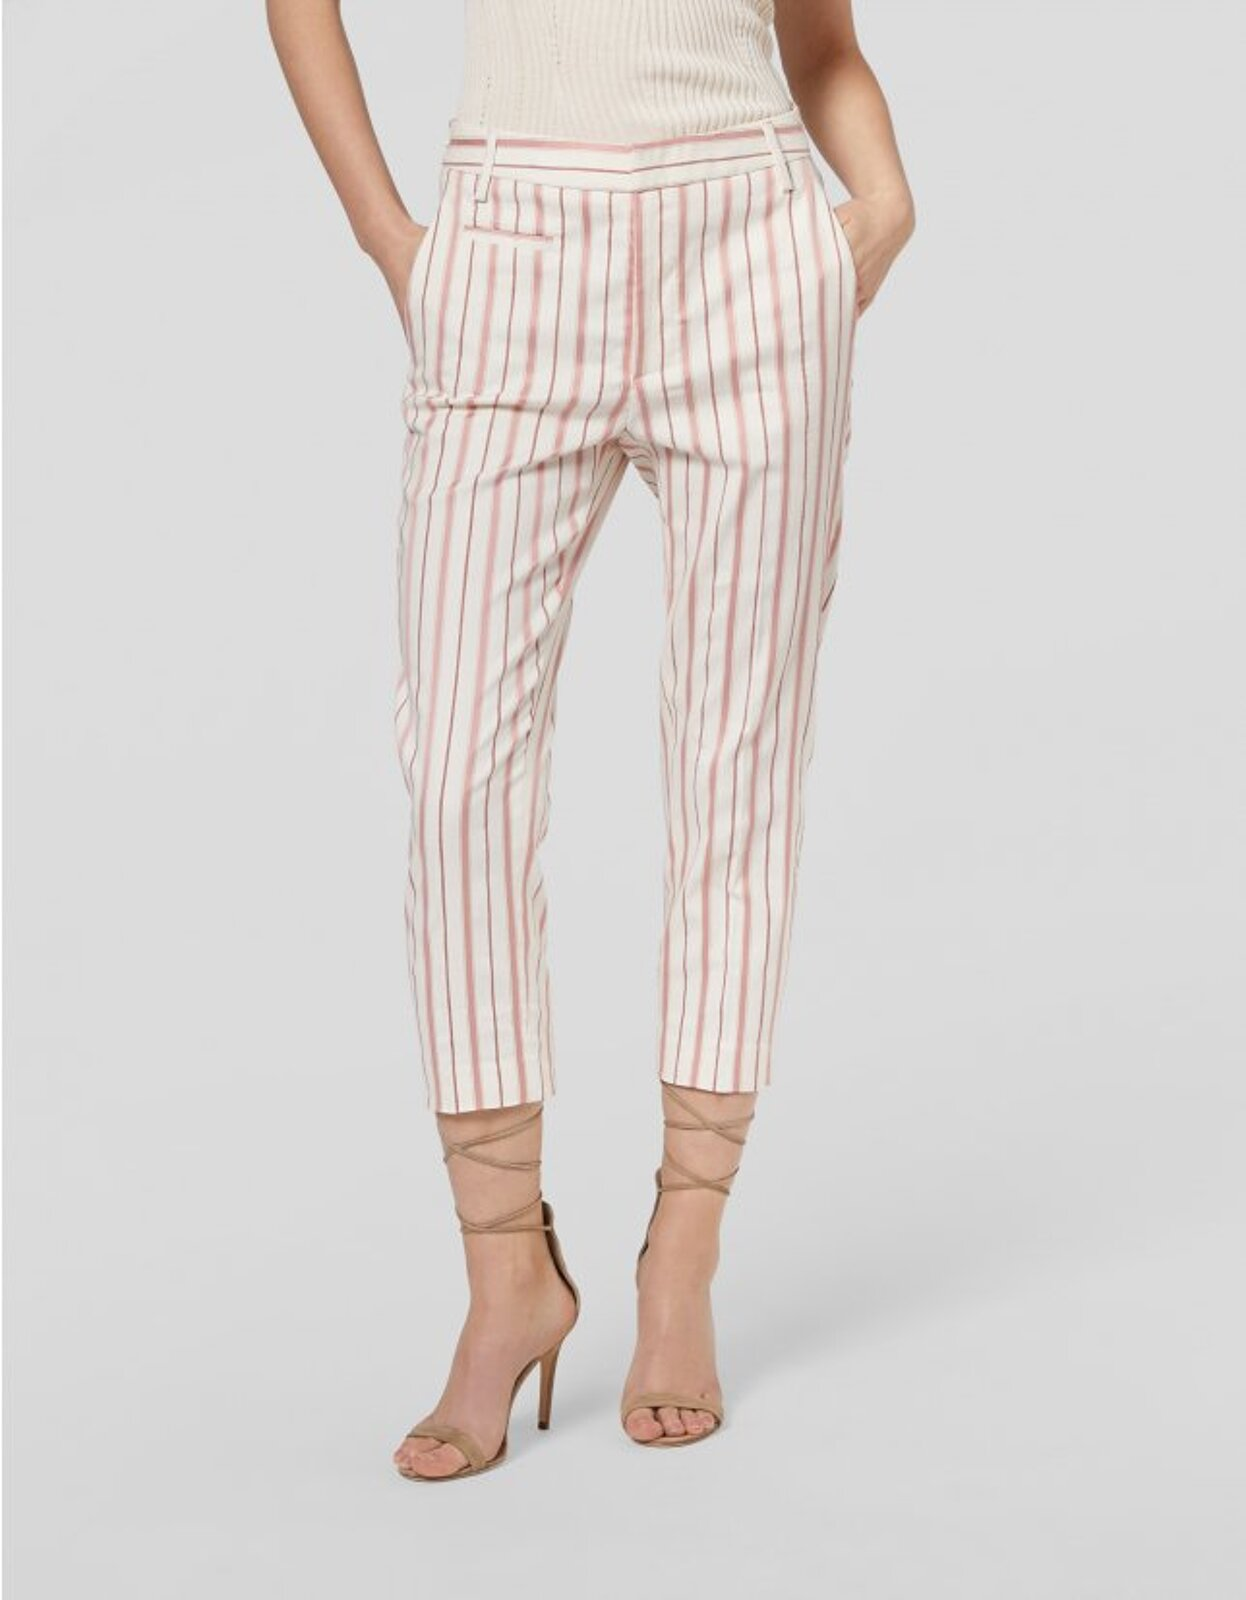 Ariel Carrot Trousers In Cotton And Striped Viscose - Dondup